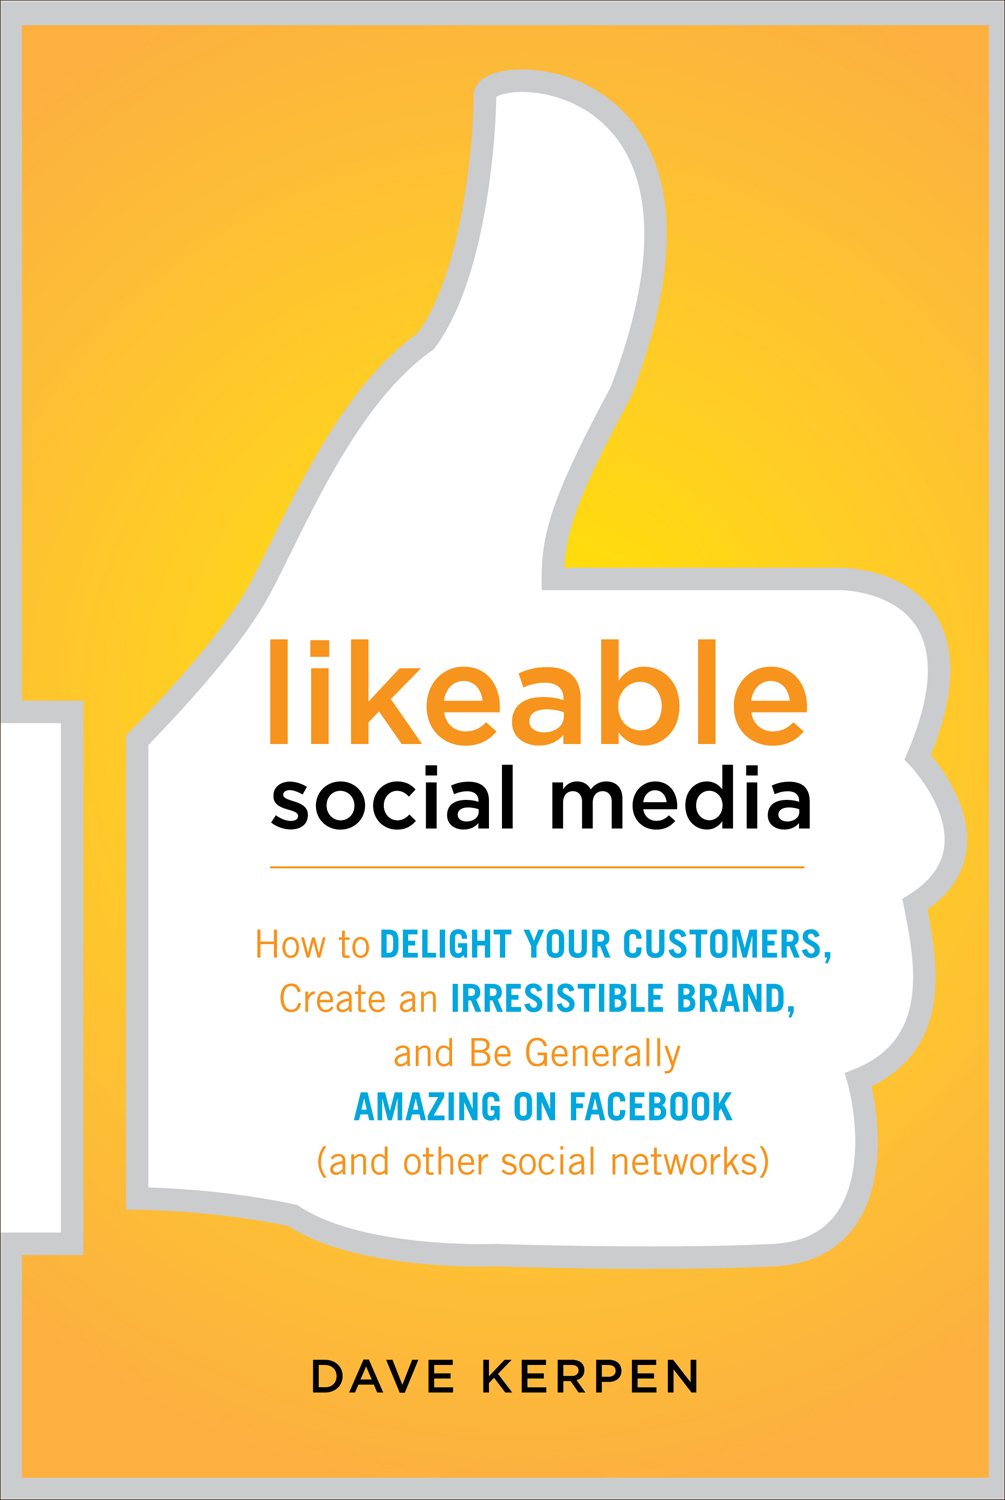 Likeable Social Media book cover